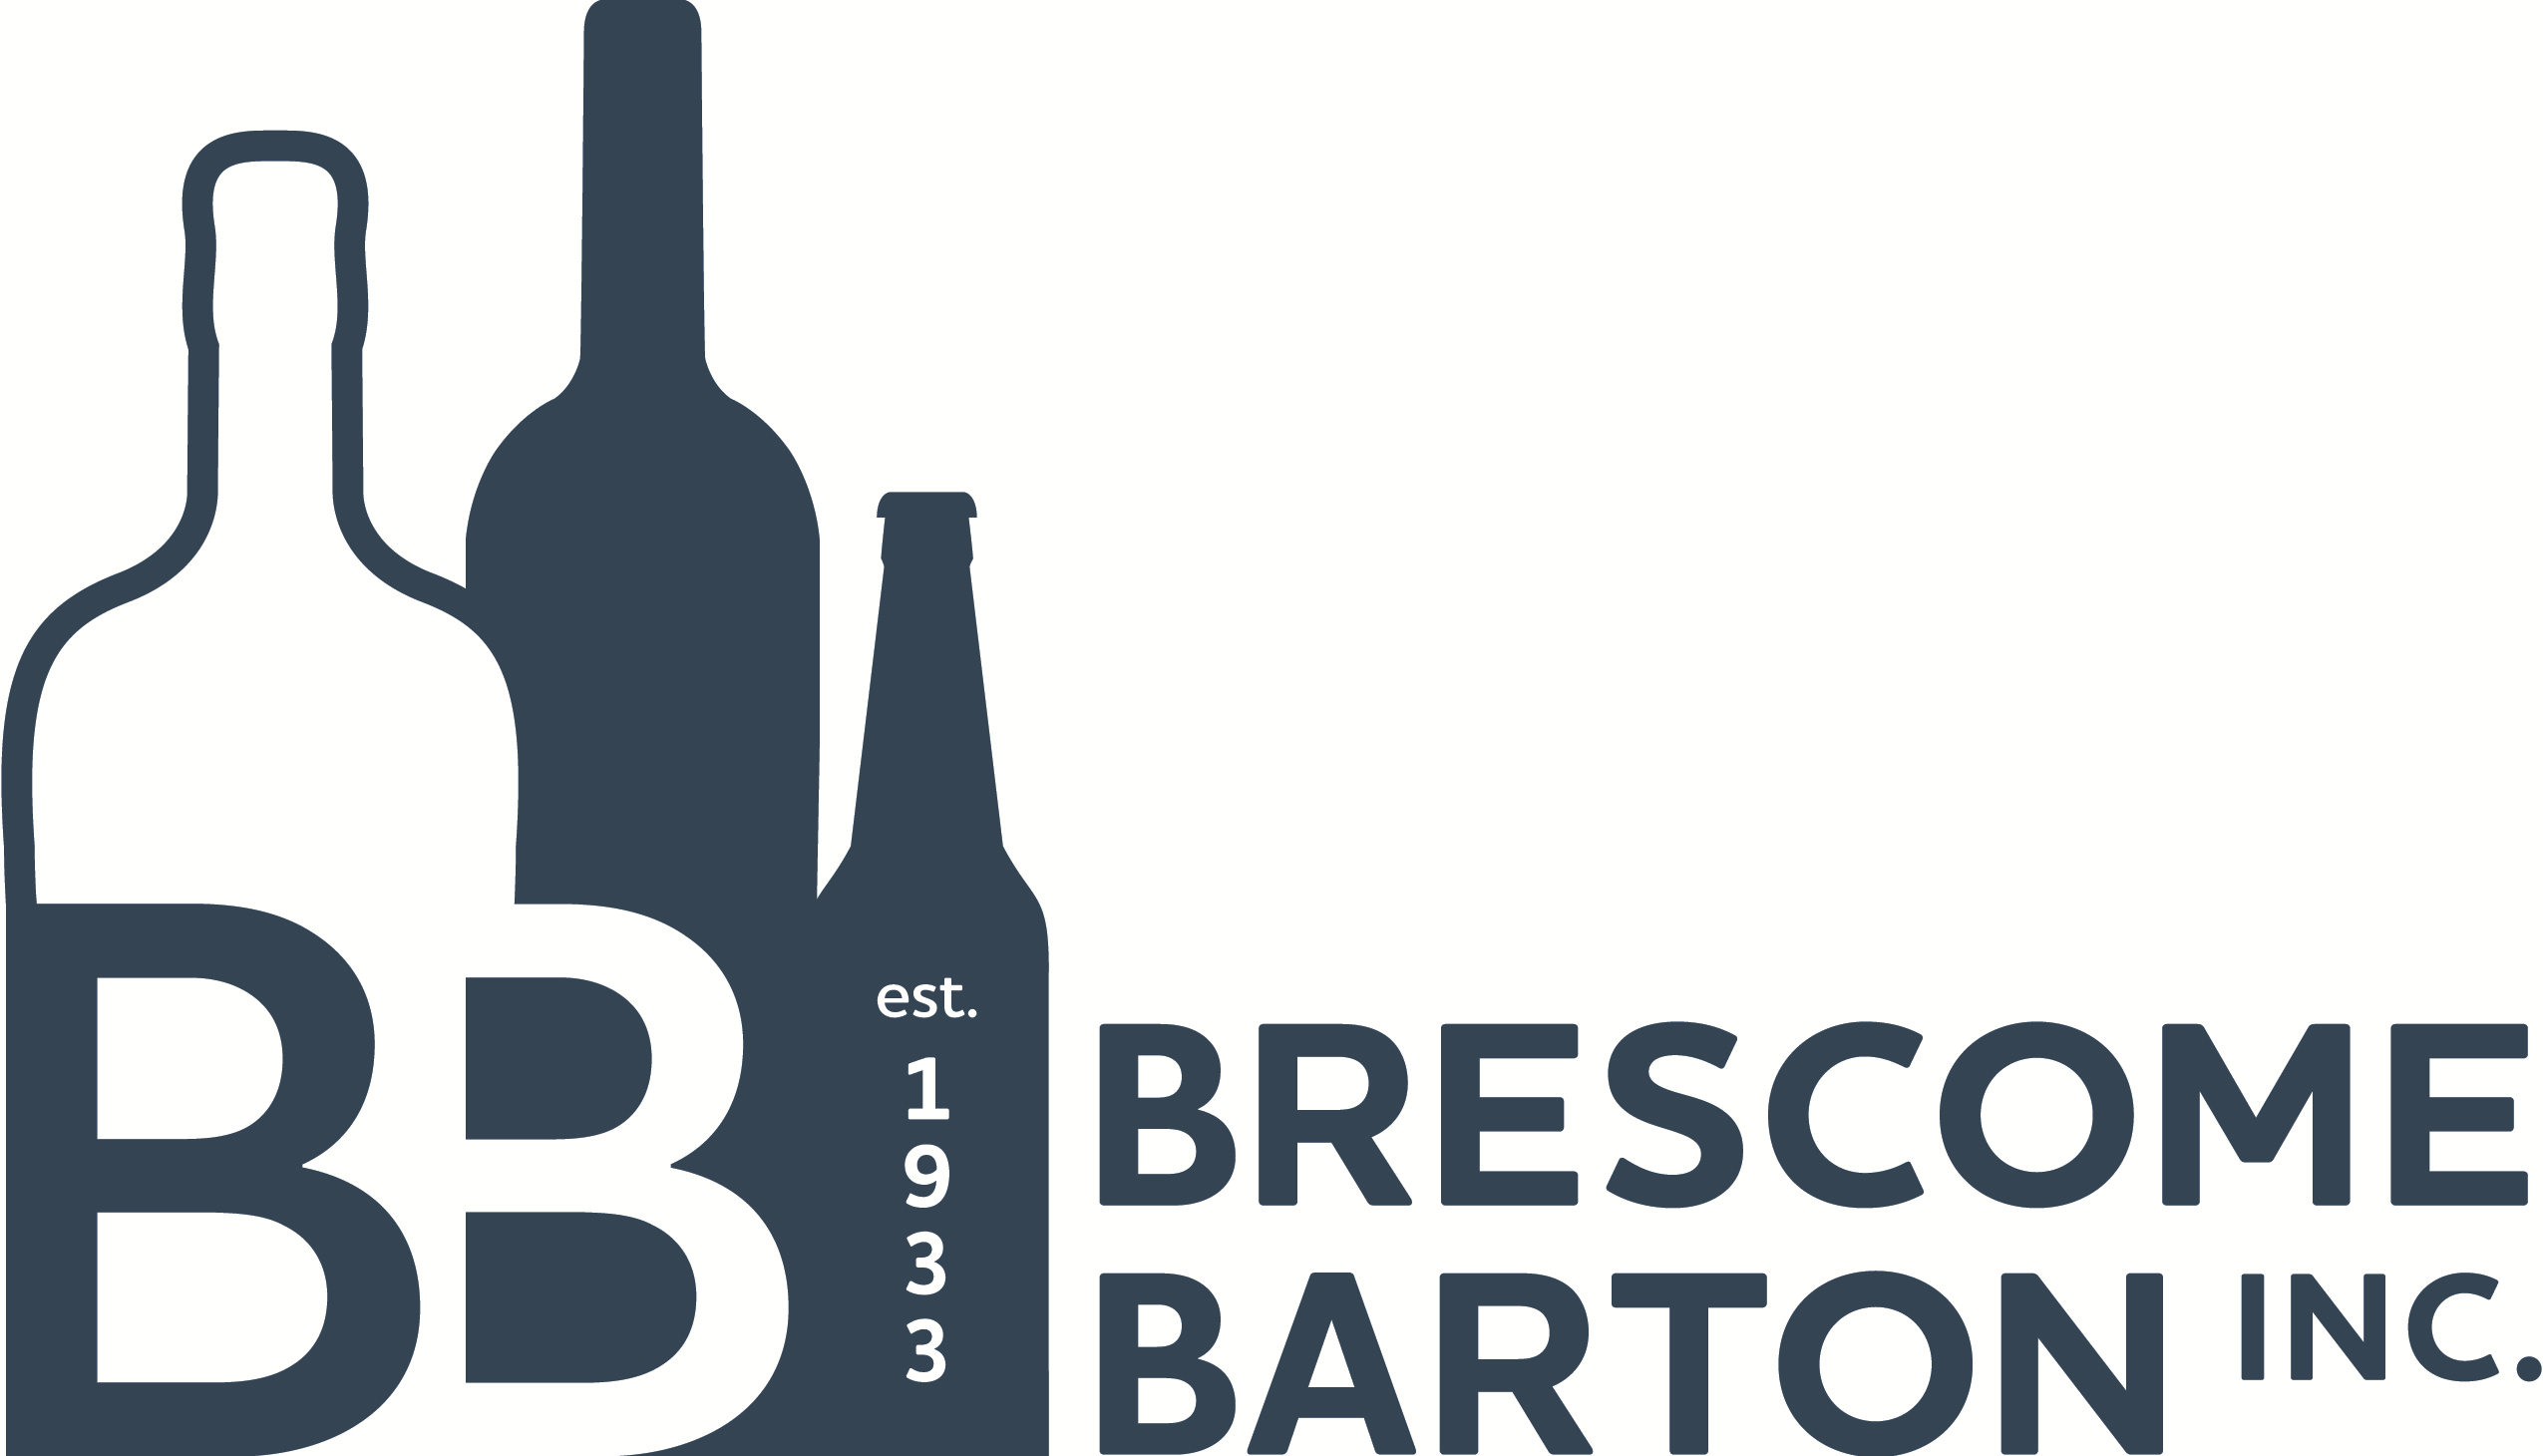 September 17, 2019: Brescome Barton Fall Trade Tasting